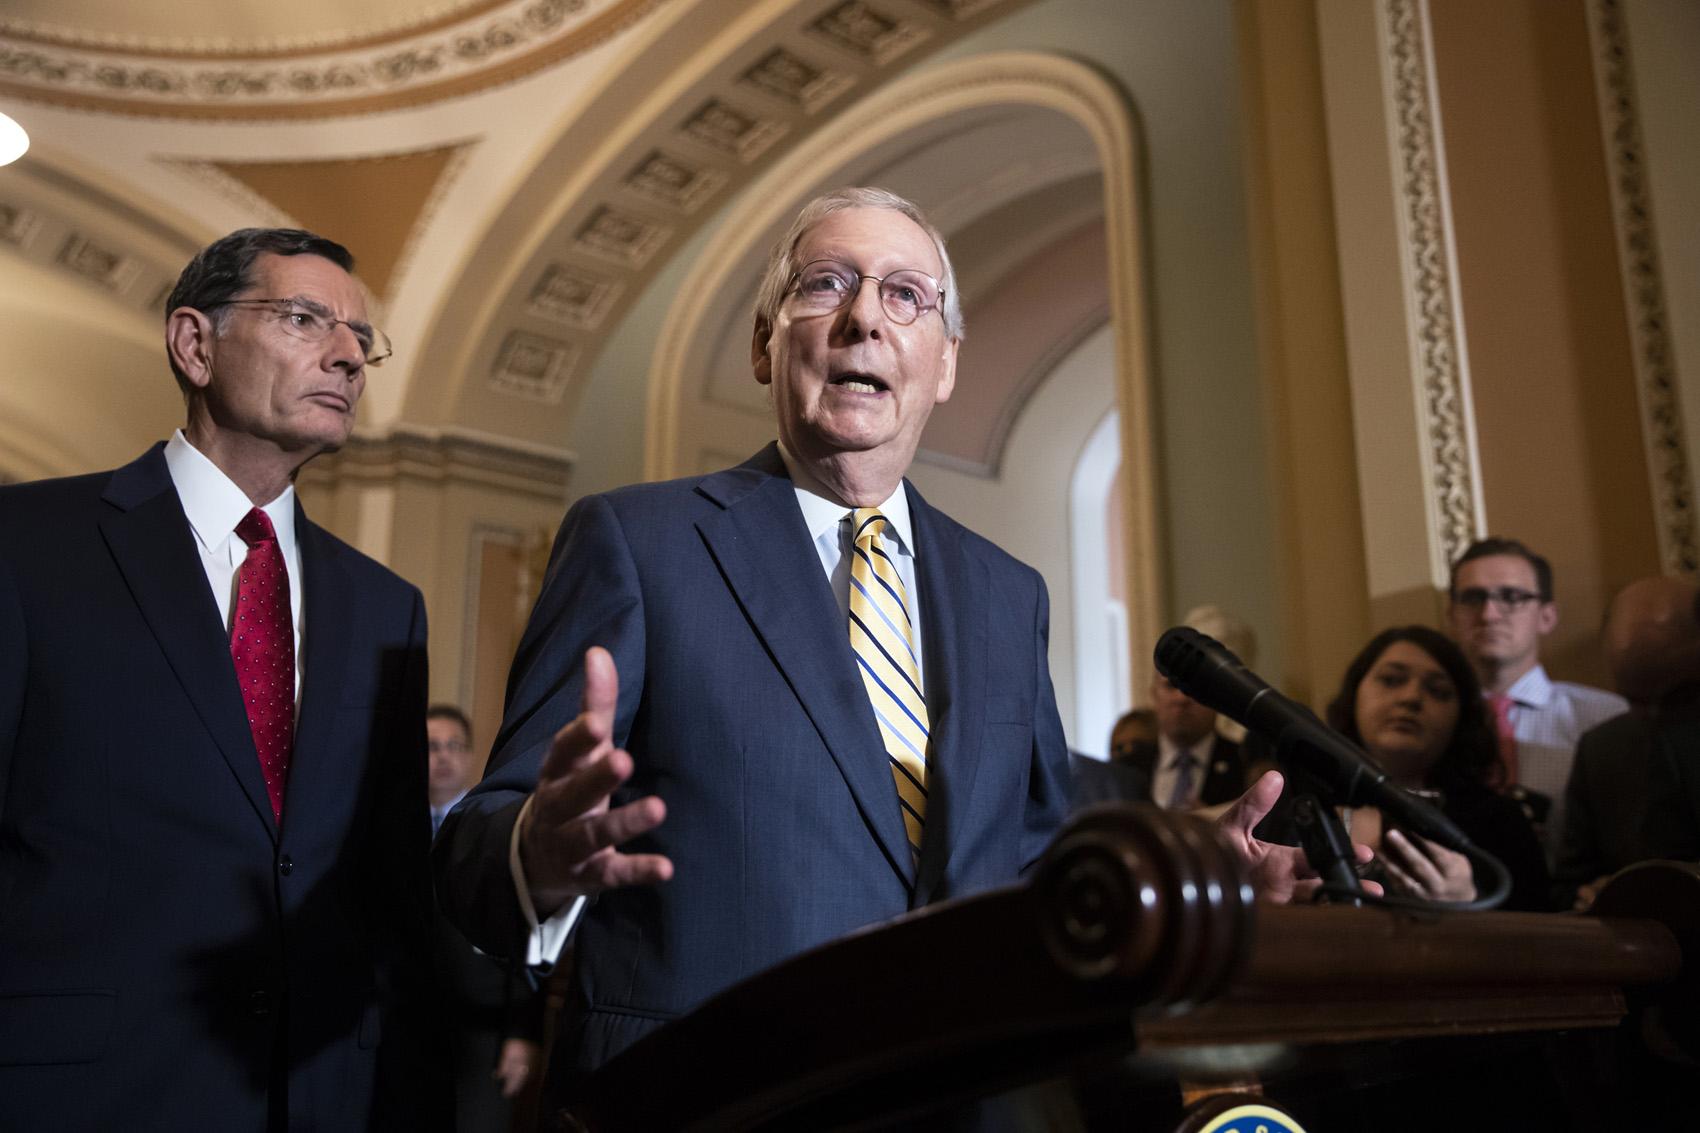 Senate Majority Leader Mitch McConnell, R-Ky., joined at left by Sen. John Barrasso, R-Wyo., speaks to reporters about the political battle for confirmation of President Donald Trump's Supreme Court nominee, Brett Kavanaugh, following a closed-door GOP policy meeting, at the Capitol in Washington, Tuesday, Oct. 2, 2018. (AP Photo/J. Scott Applewhite)